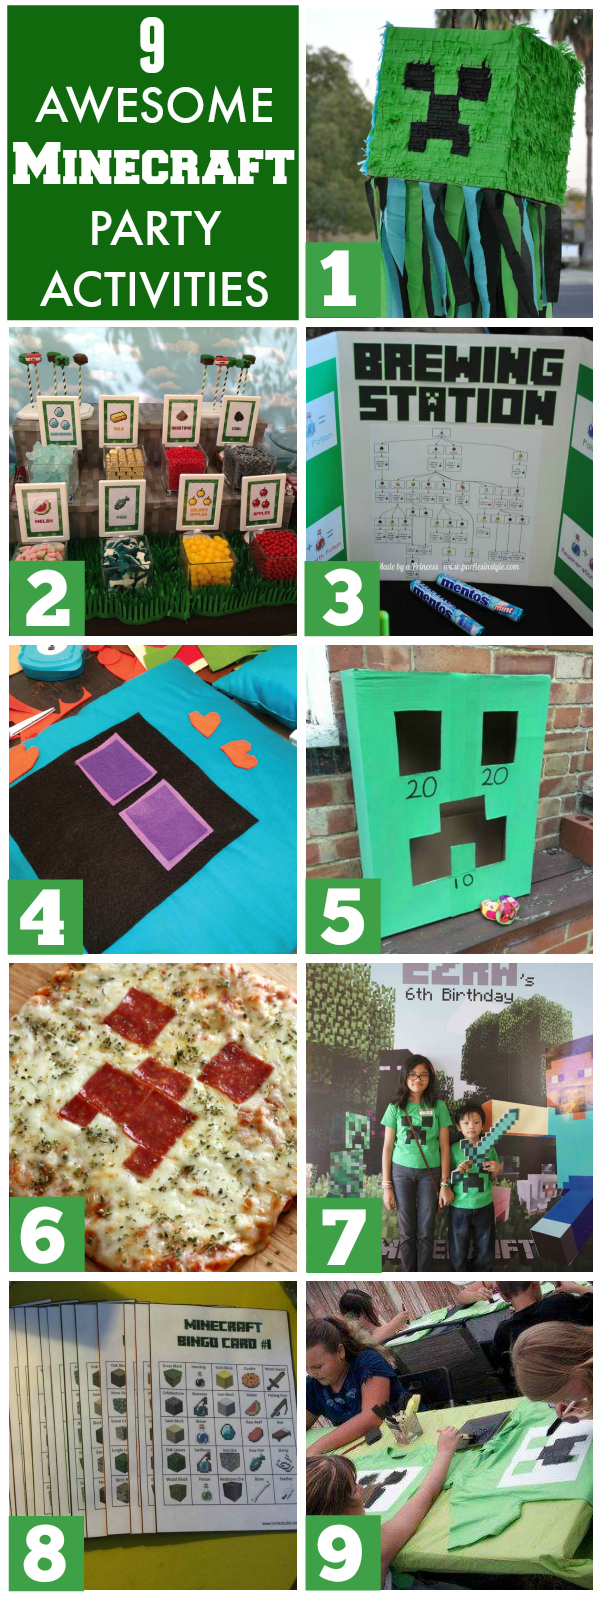 Stupendous 9 Awesome Minecraft Party Activities Catch My Party Ocoug Best Dining Table And Chair Ideas Images Ocougorg